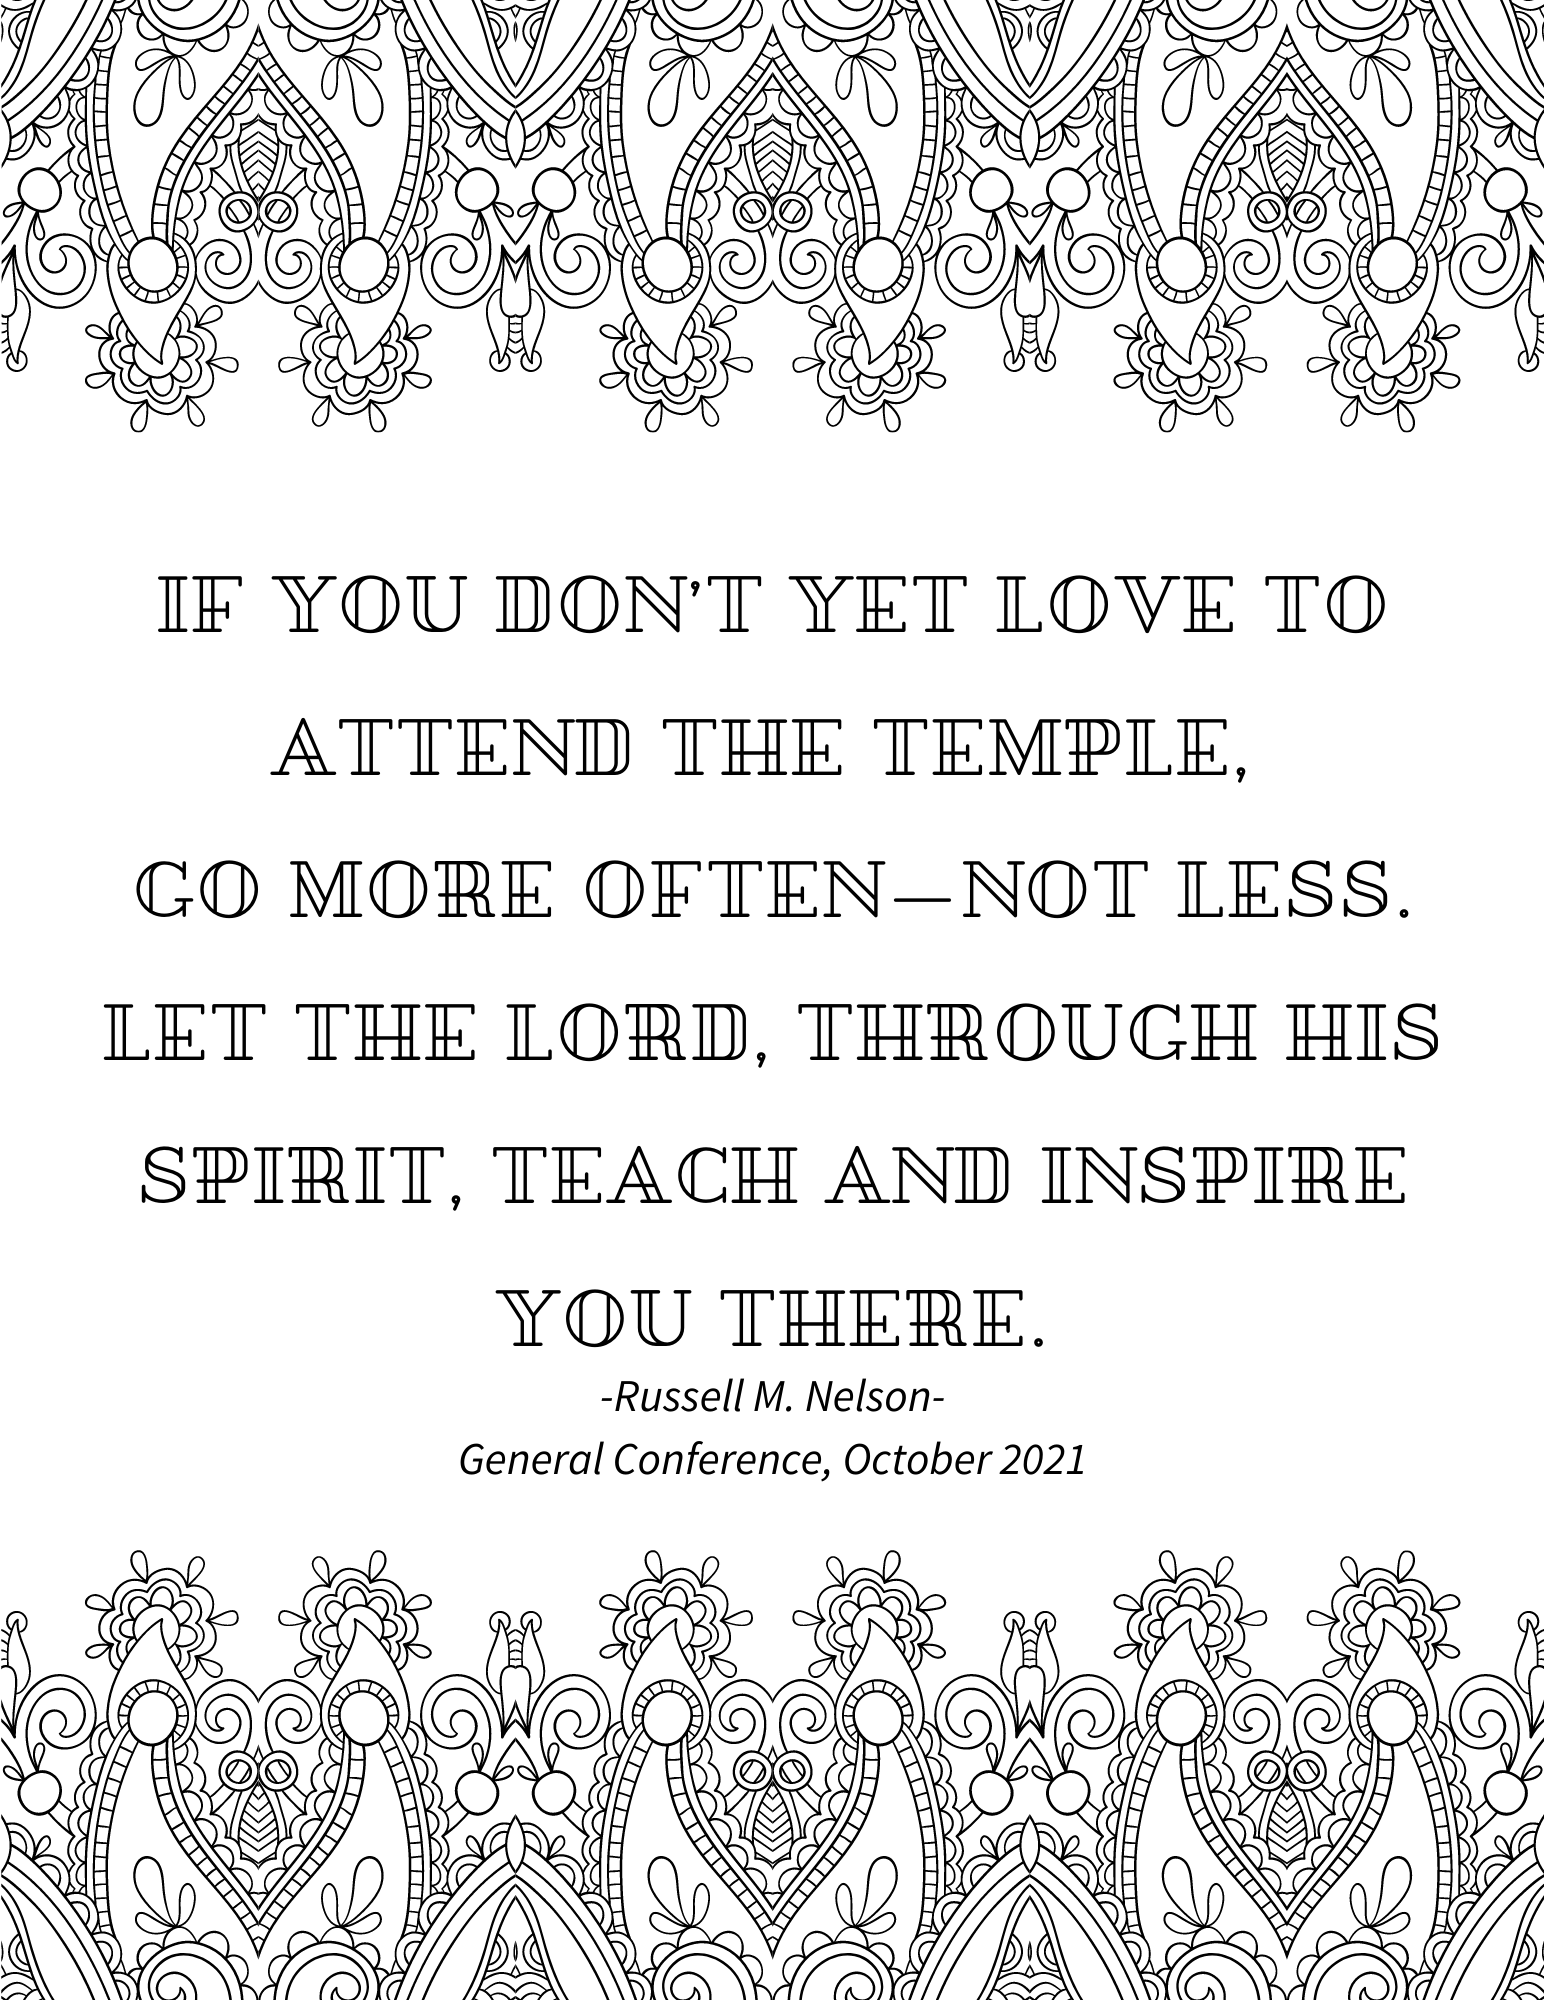 general conference quotes, russell m nelson quote, october 2021 general conference